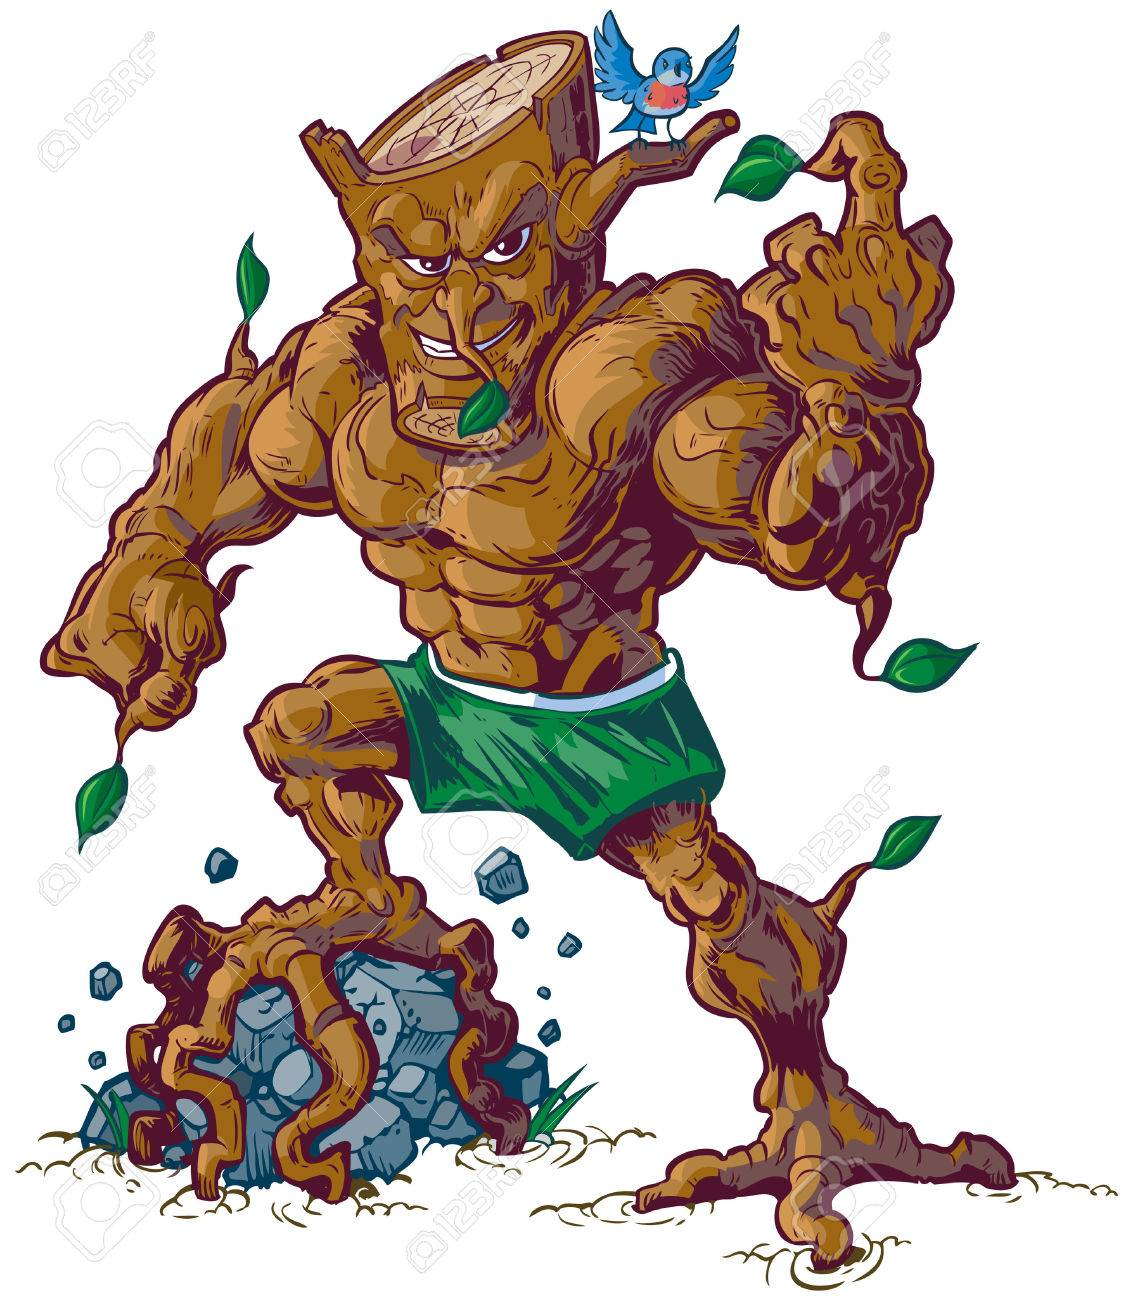 Vector Cartoon Clip Art Illustration Of A Tough Mean Tree Man Royalty Free Cliparts Vectors And Stock Illustration Image 50606774 There are 12613 cartoon tree for sale on etsy, and they cost $10.56 on average. vector cartoon clip art illustration of a tough mean tree man